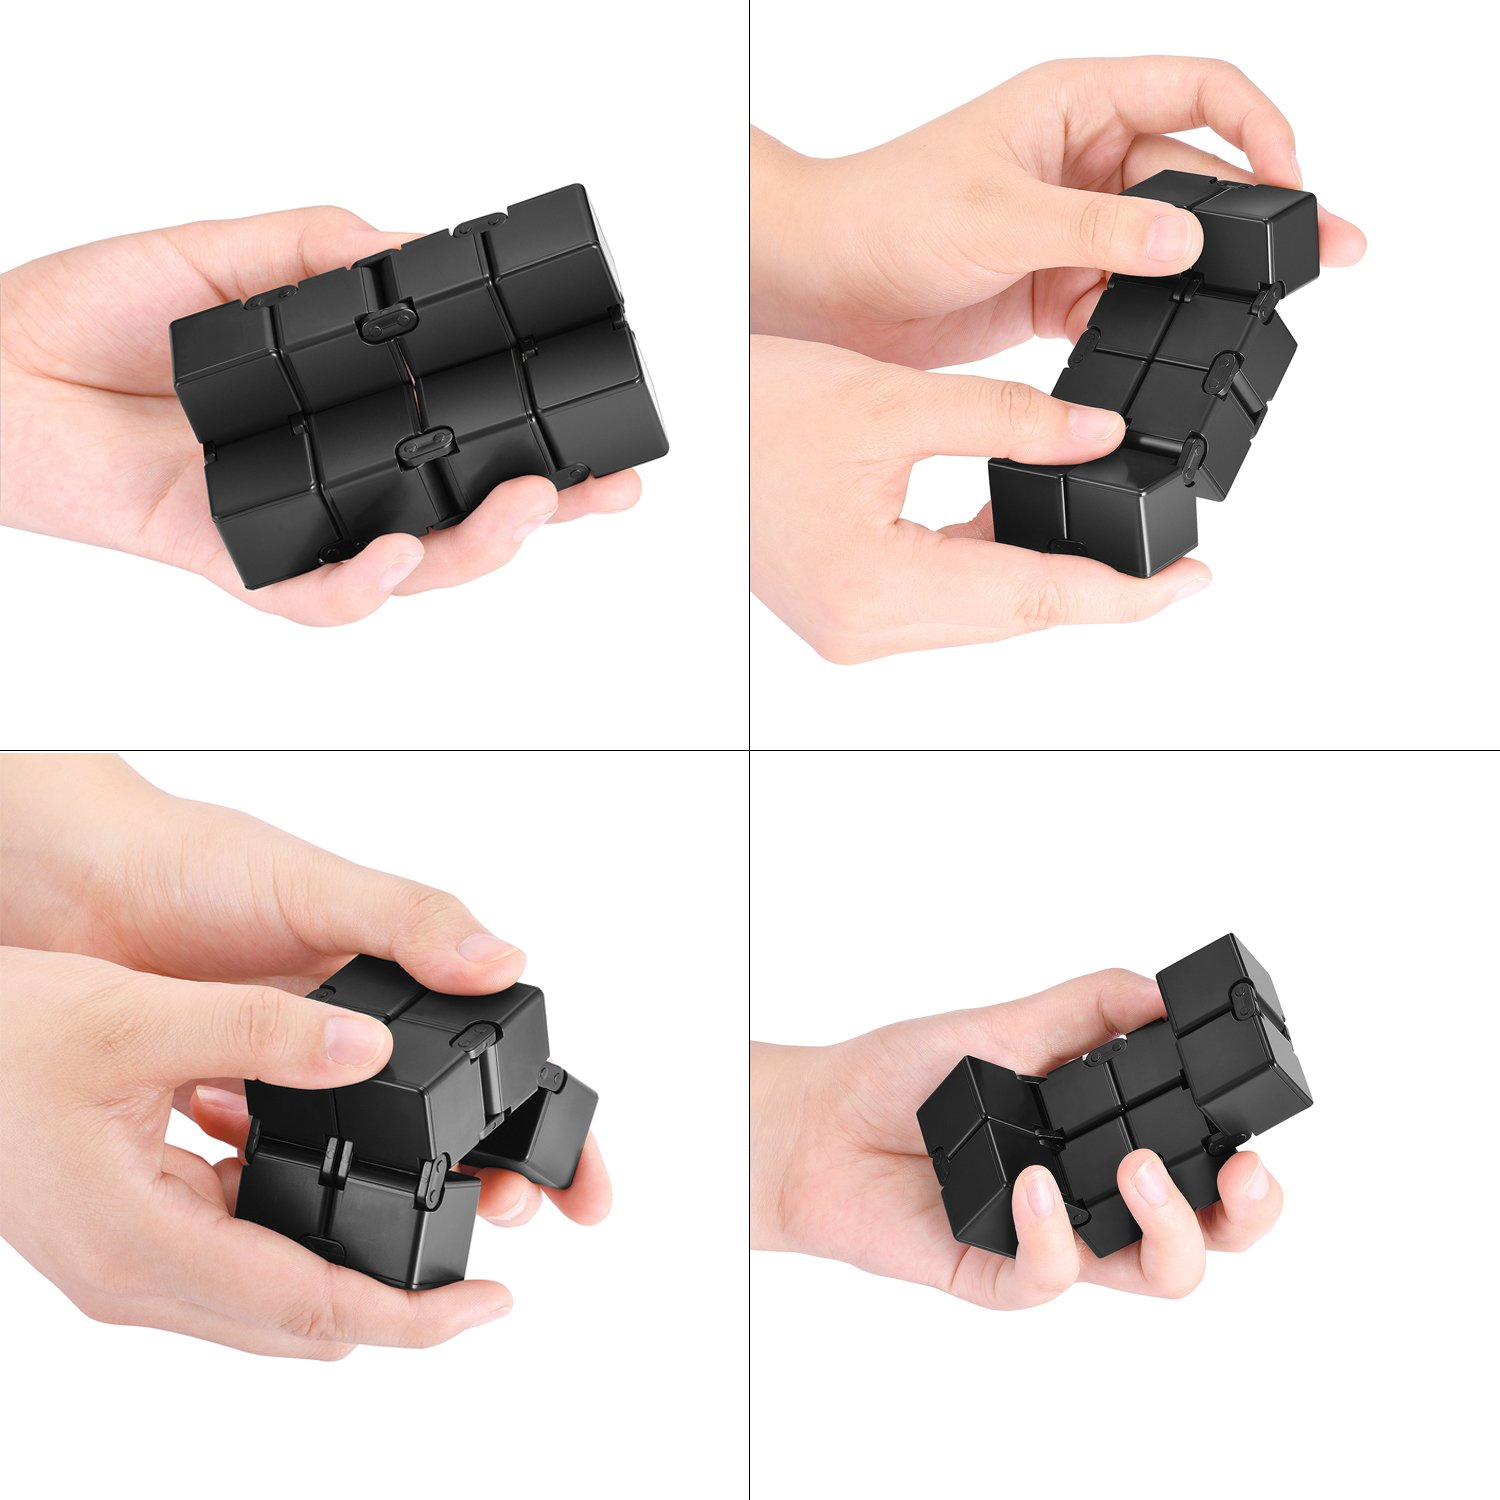 Fidget Cube Cool Mini Magic Cube Gadget Spinner for Stress and Anxiety Relief and Kill Time by Ganowo Black Infinity Cube Fidget Toy for Kids and Adults DGC2102